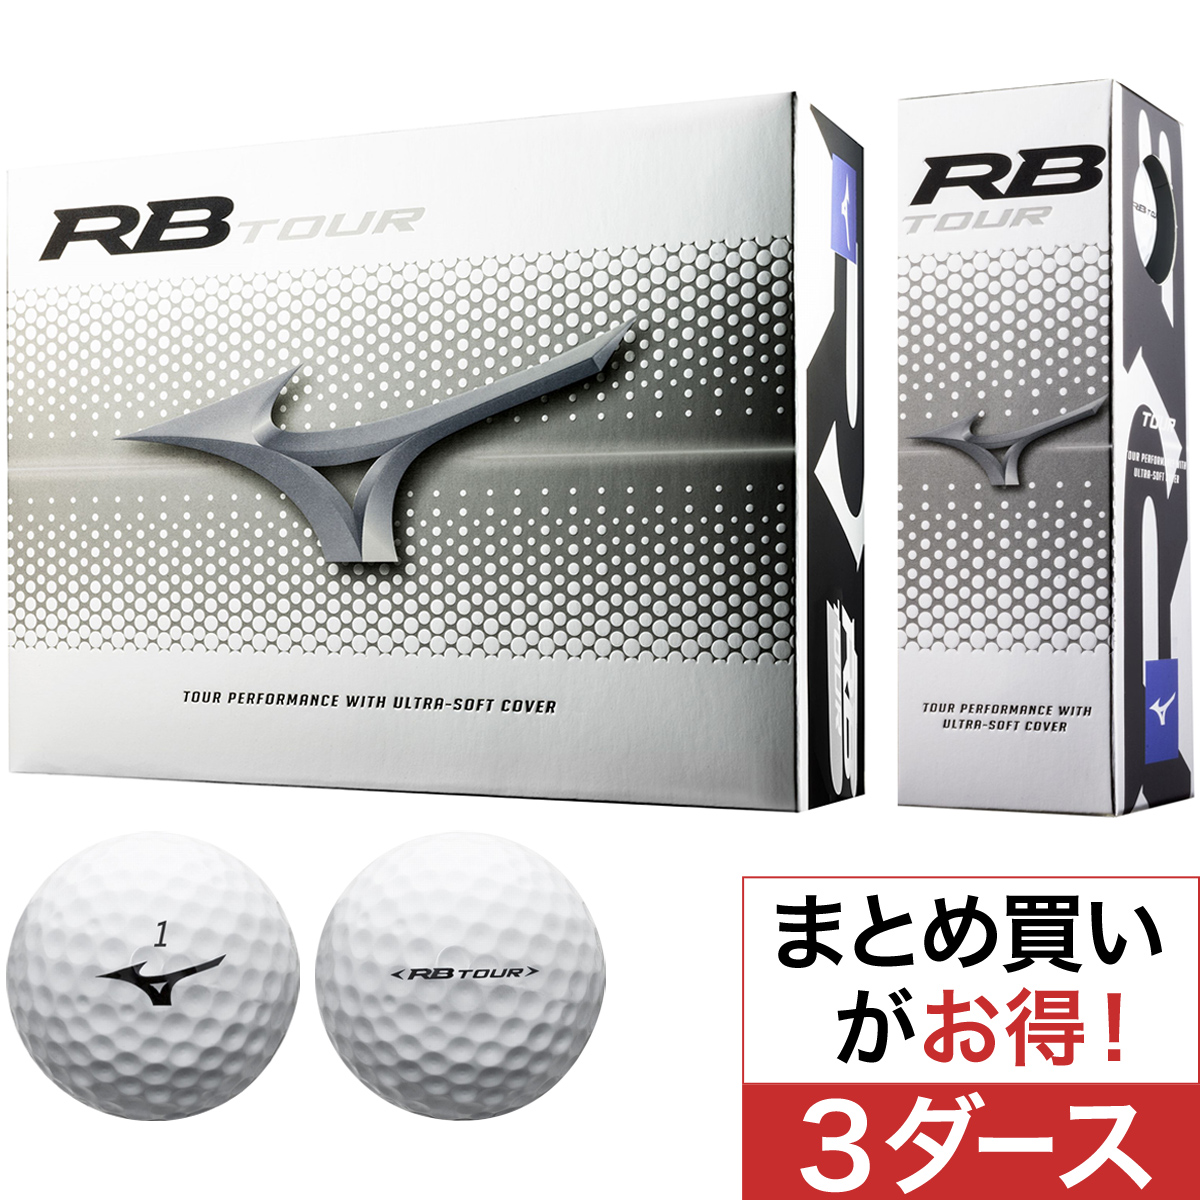 RB TOUR ボール 3ダースセット